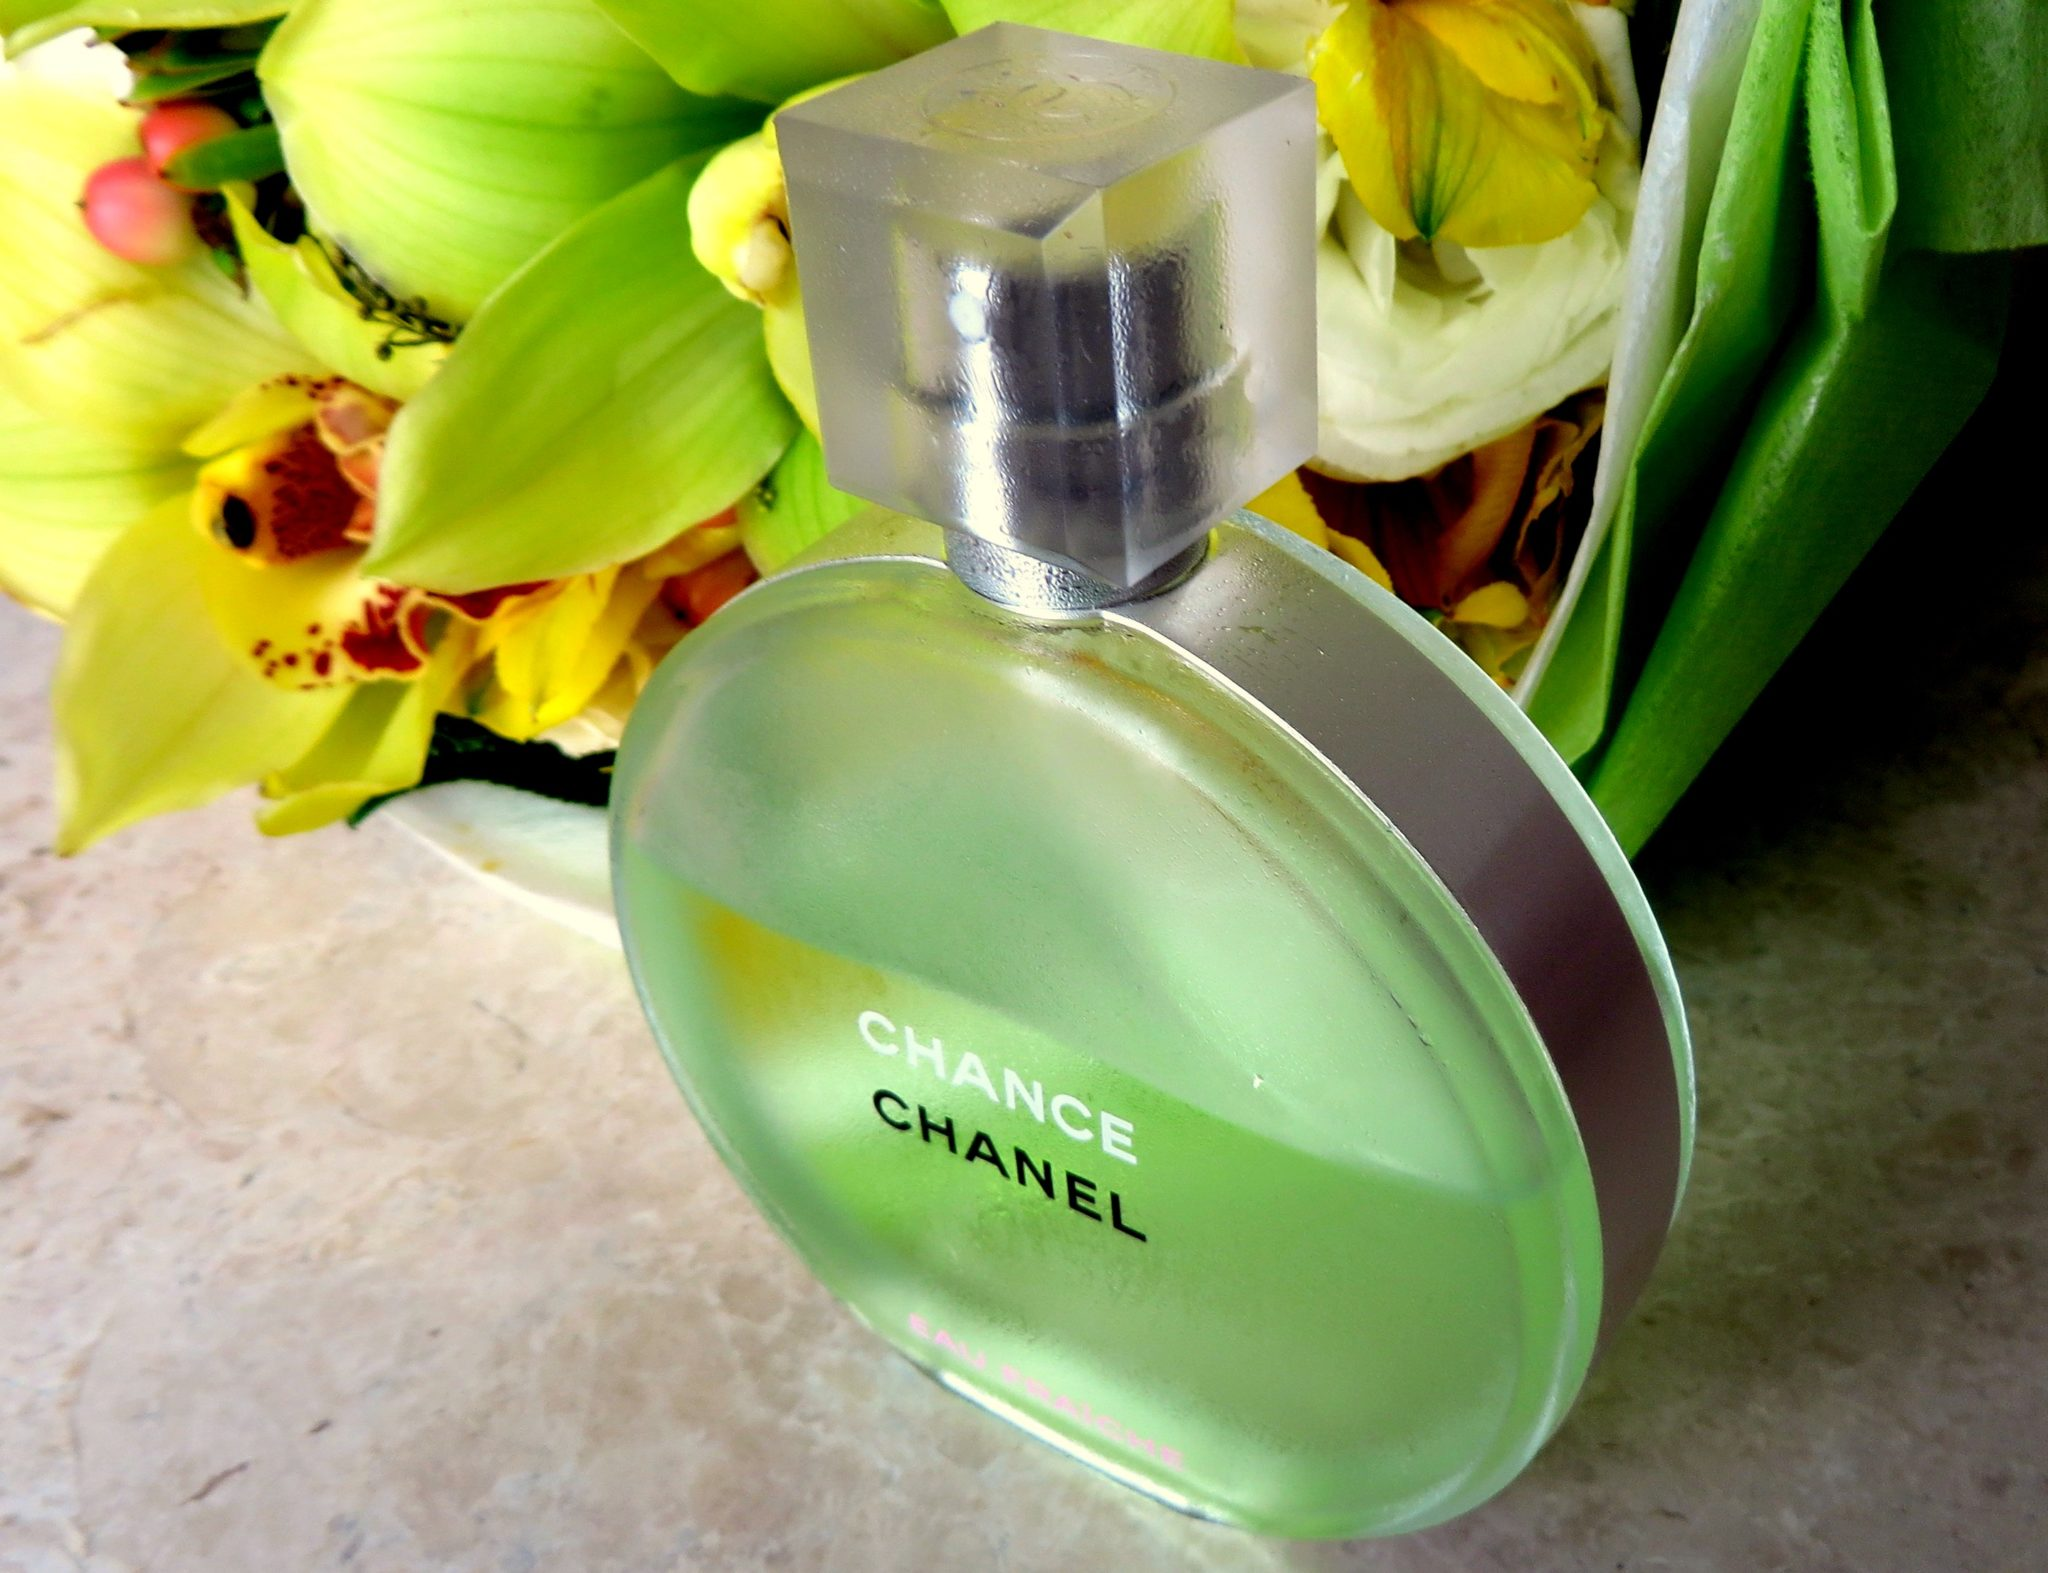 25cd174d3 Chanel Chance Eau Fraiche EDT|Vanitynoapologies|Indian Makeup and ...